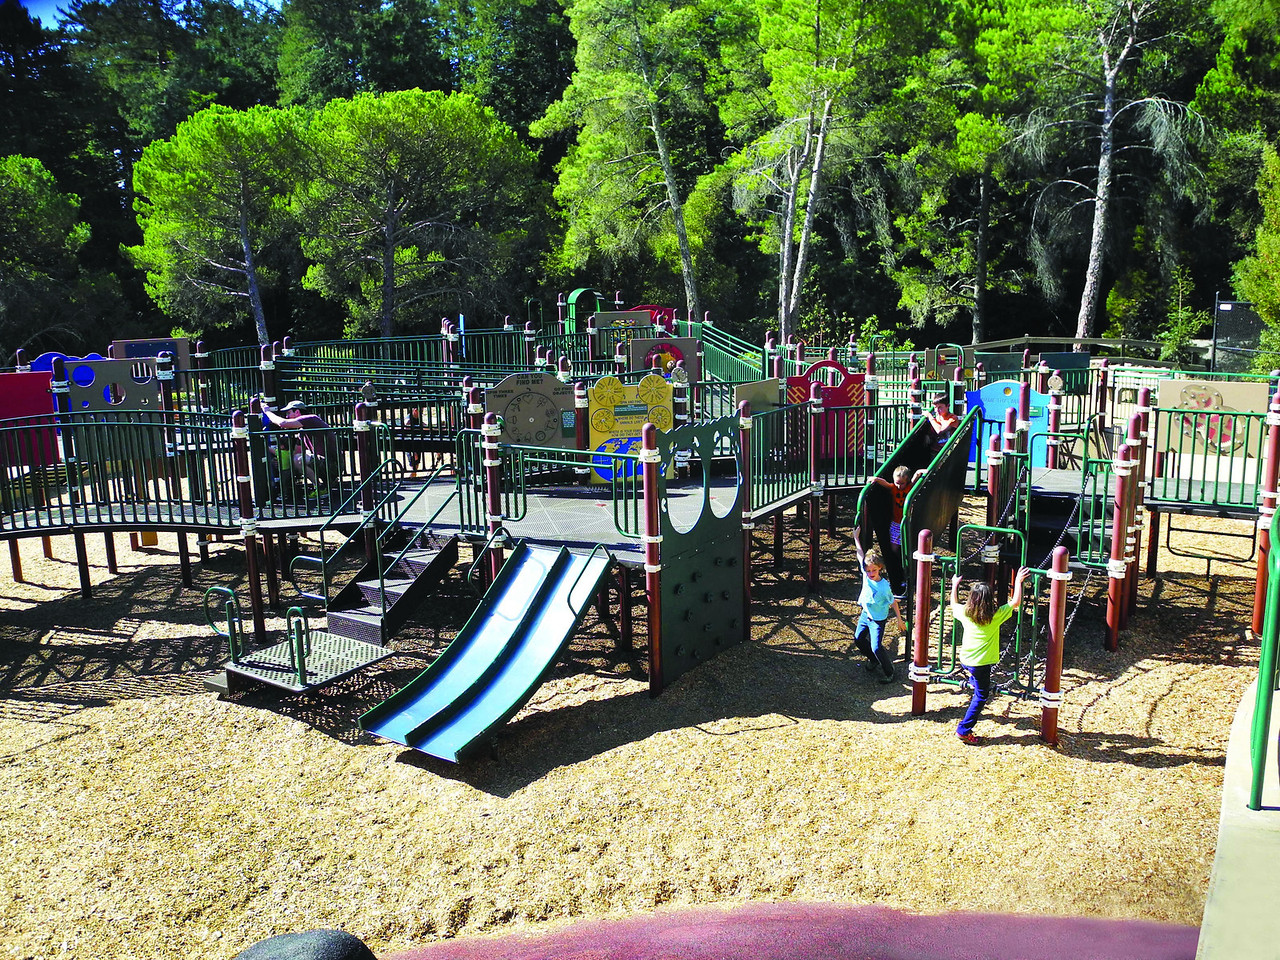 Today: The merry-go-round and pony ride are gone, but a special feature at Roberts is its accessible play structure, designed so that children with all levels of physical ability can play together.